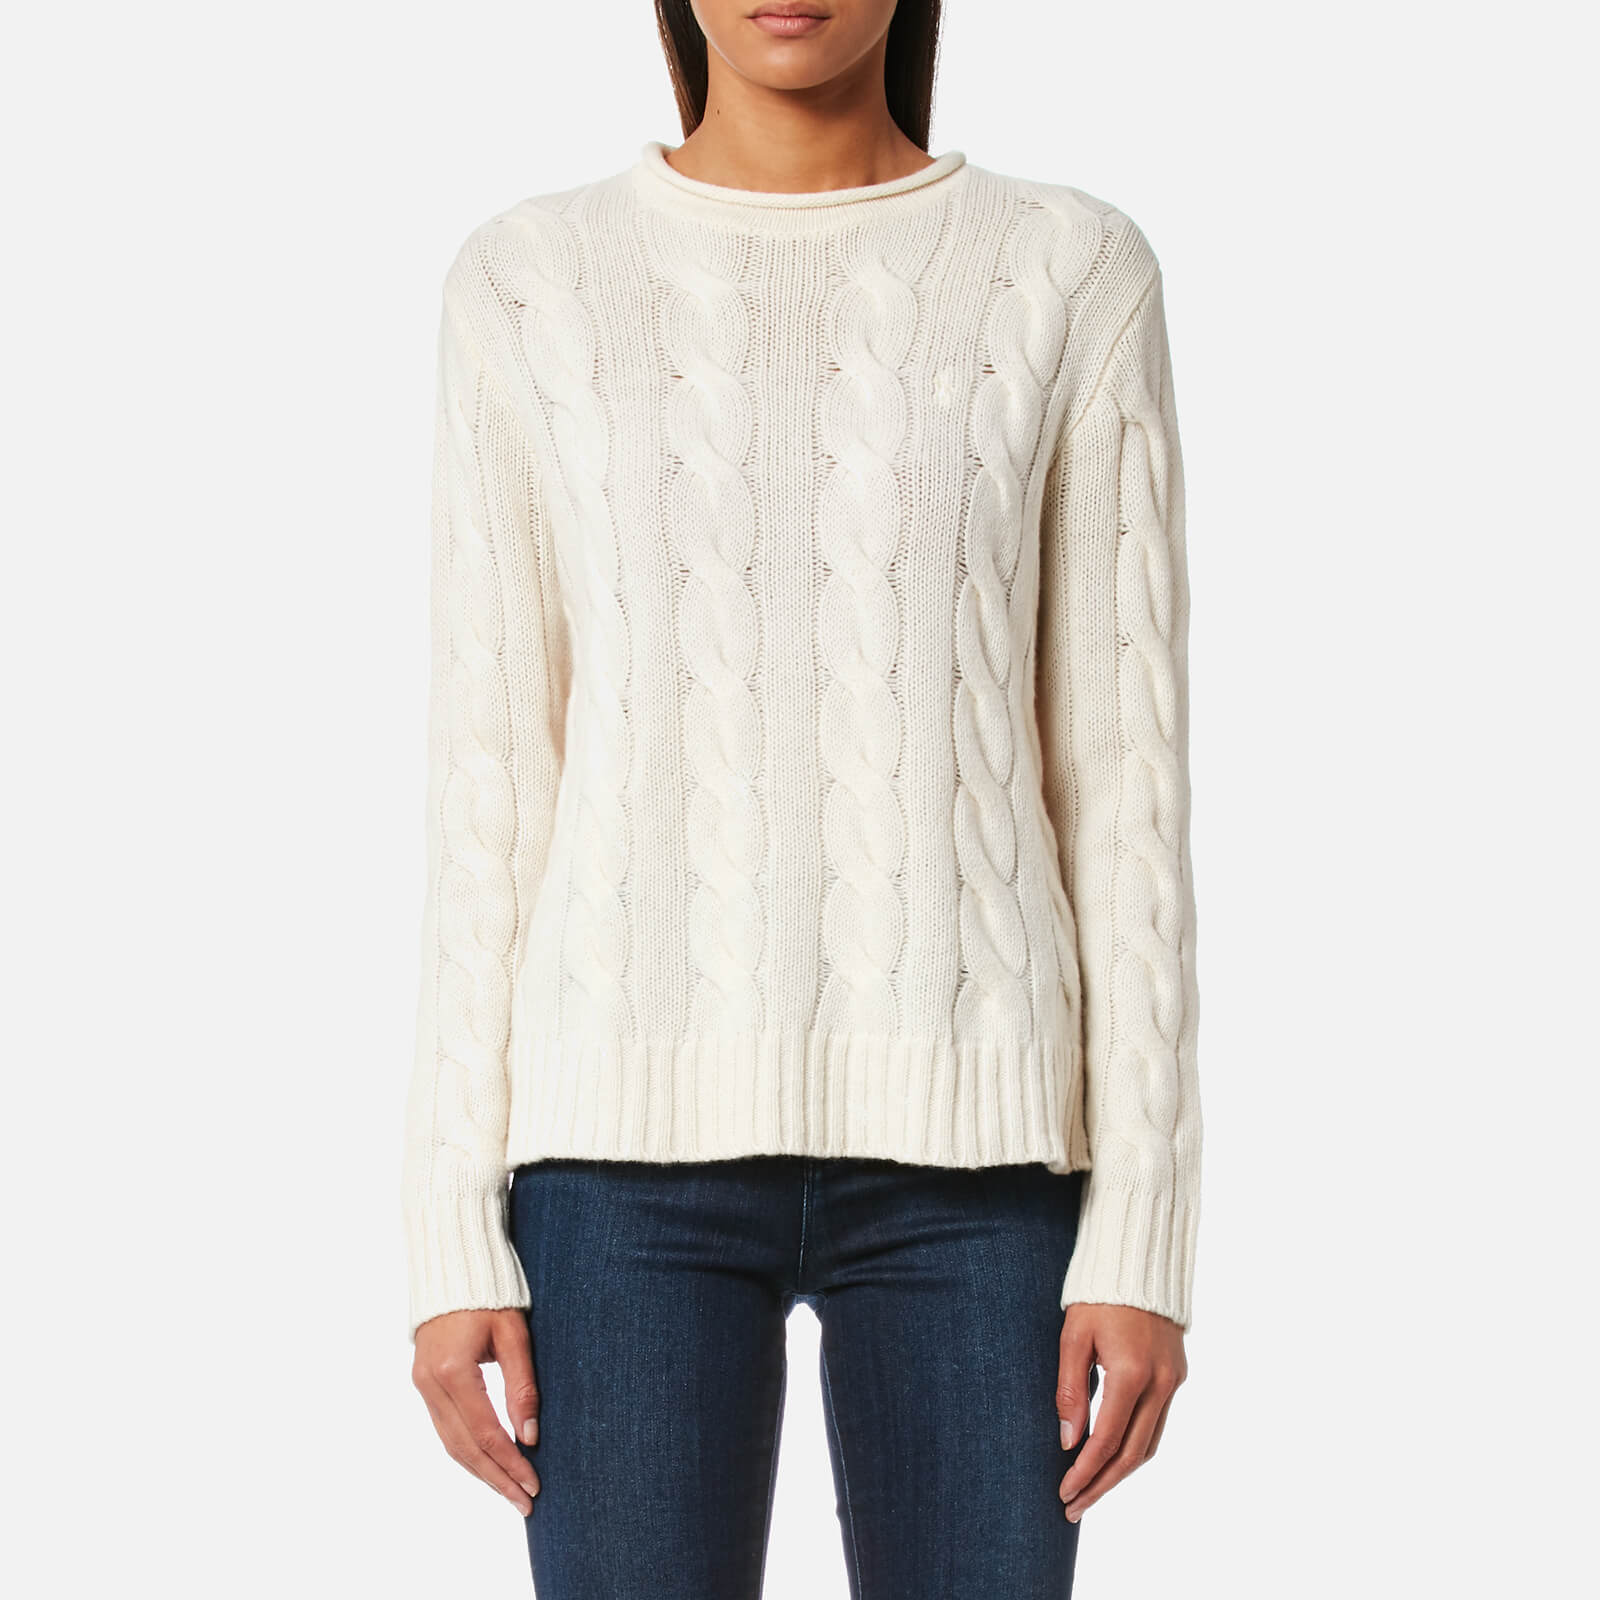 8edd238fc371c4 Polo Ralph Lauren Women s Boxy Roll Neck Jumper - Cream - Free UK Delivery  over £50